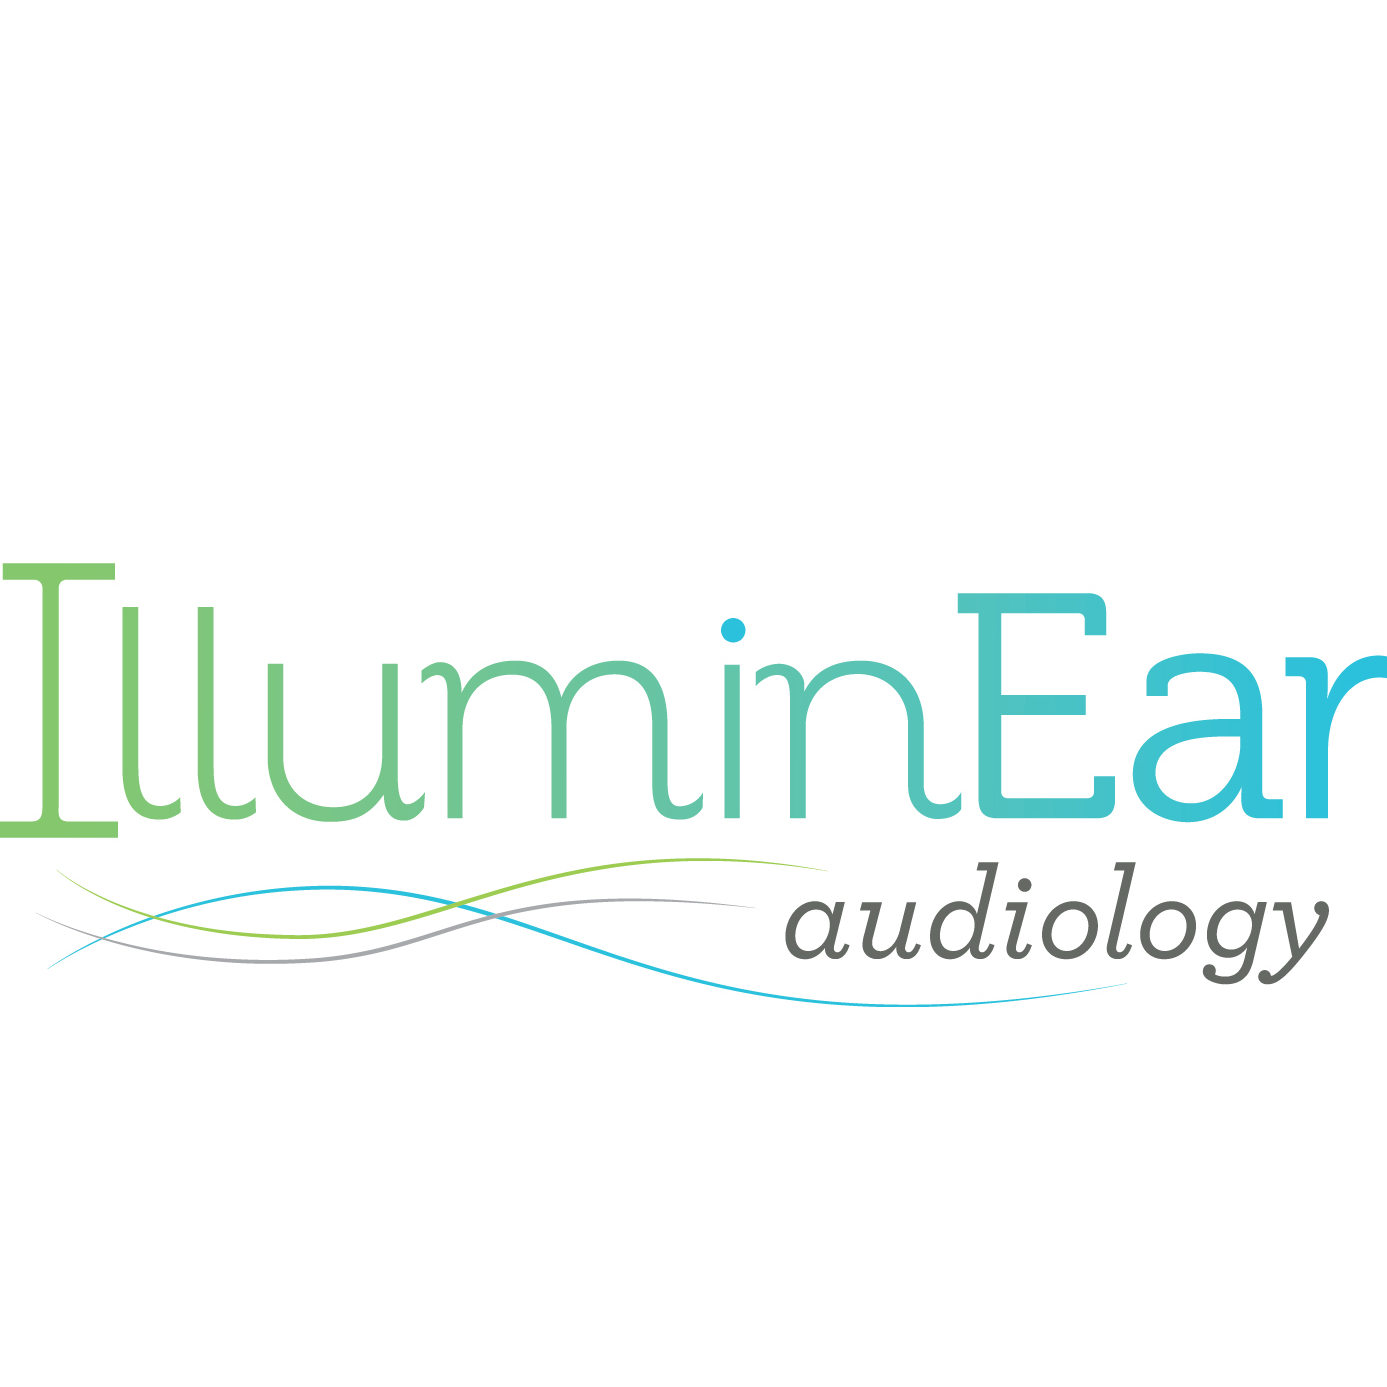 Illuminear Tinnitus & Audiology Center: Kristen, Keener, Au.D. image 1